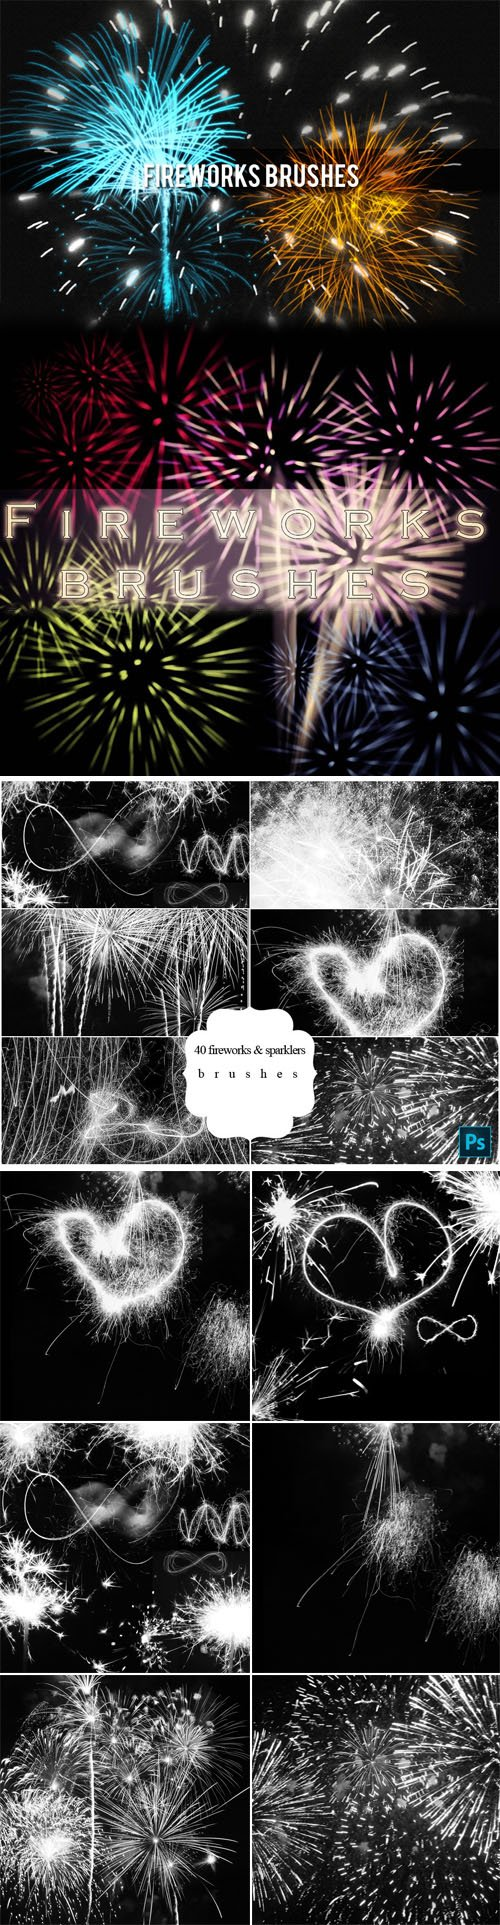 60+ Fireworks & Sparklers Brushes Collection for Photoshop